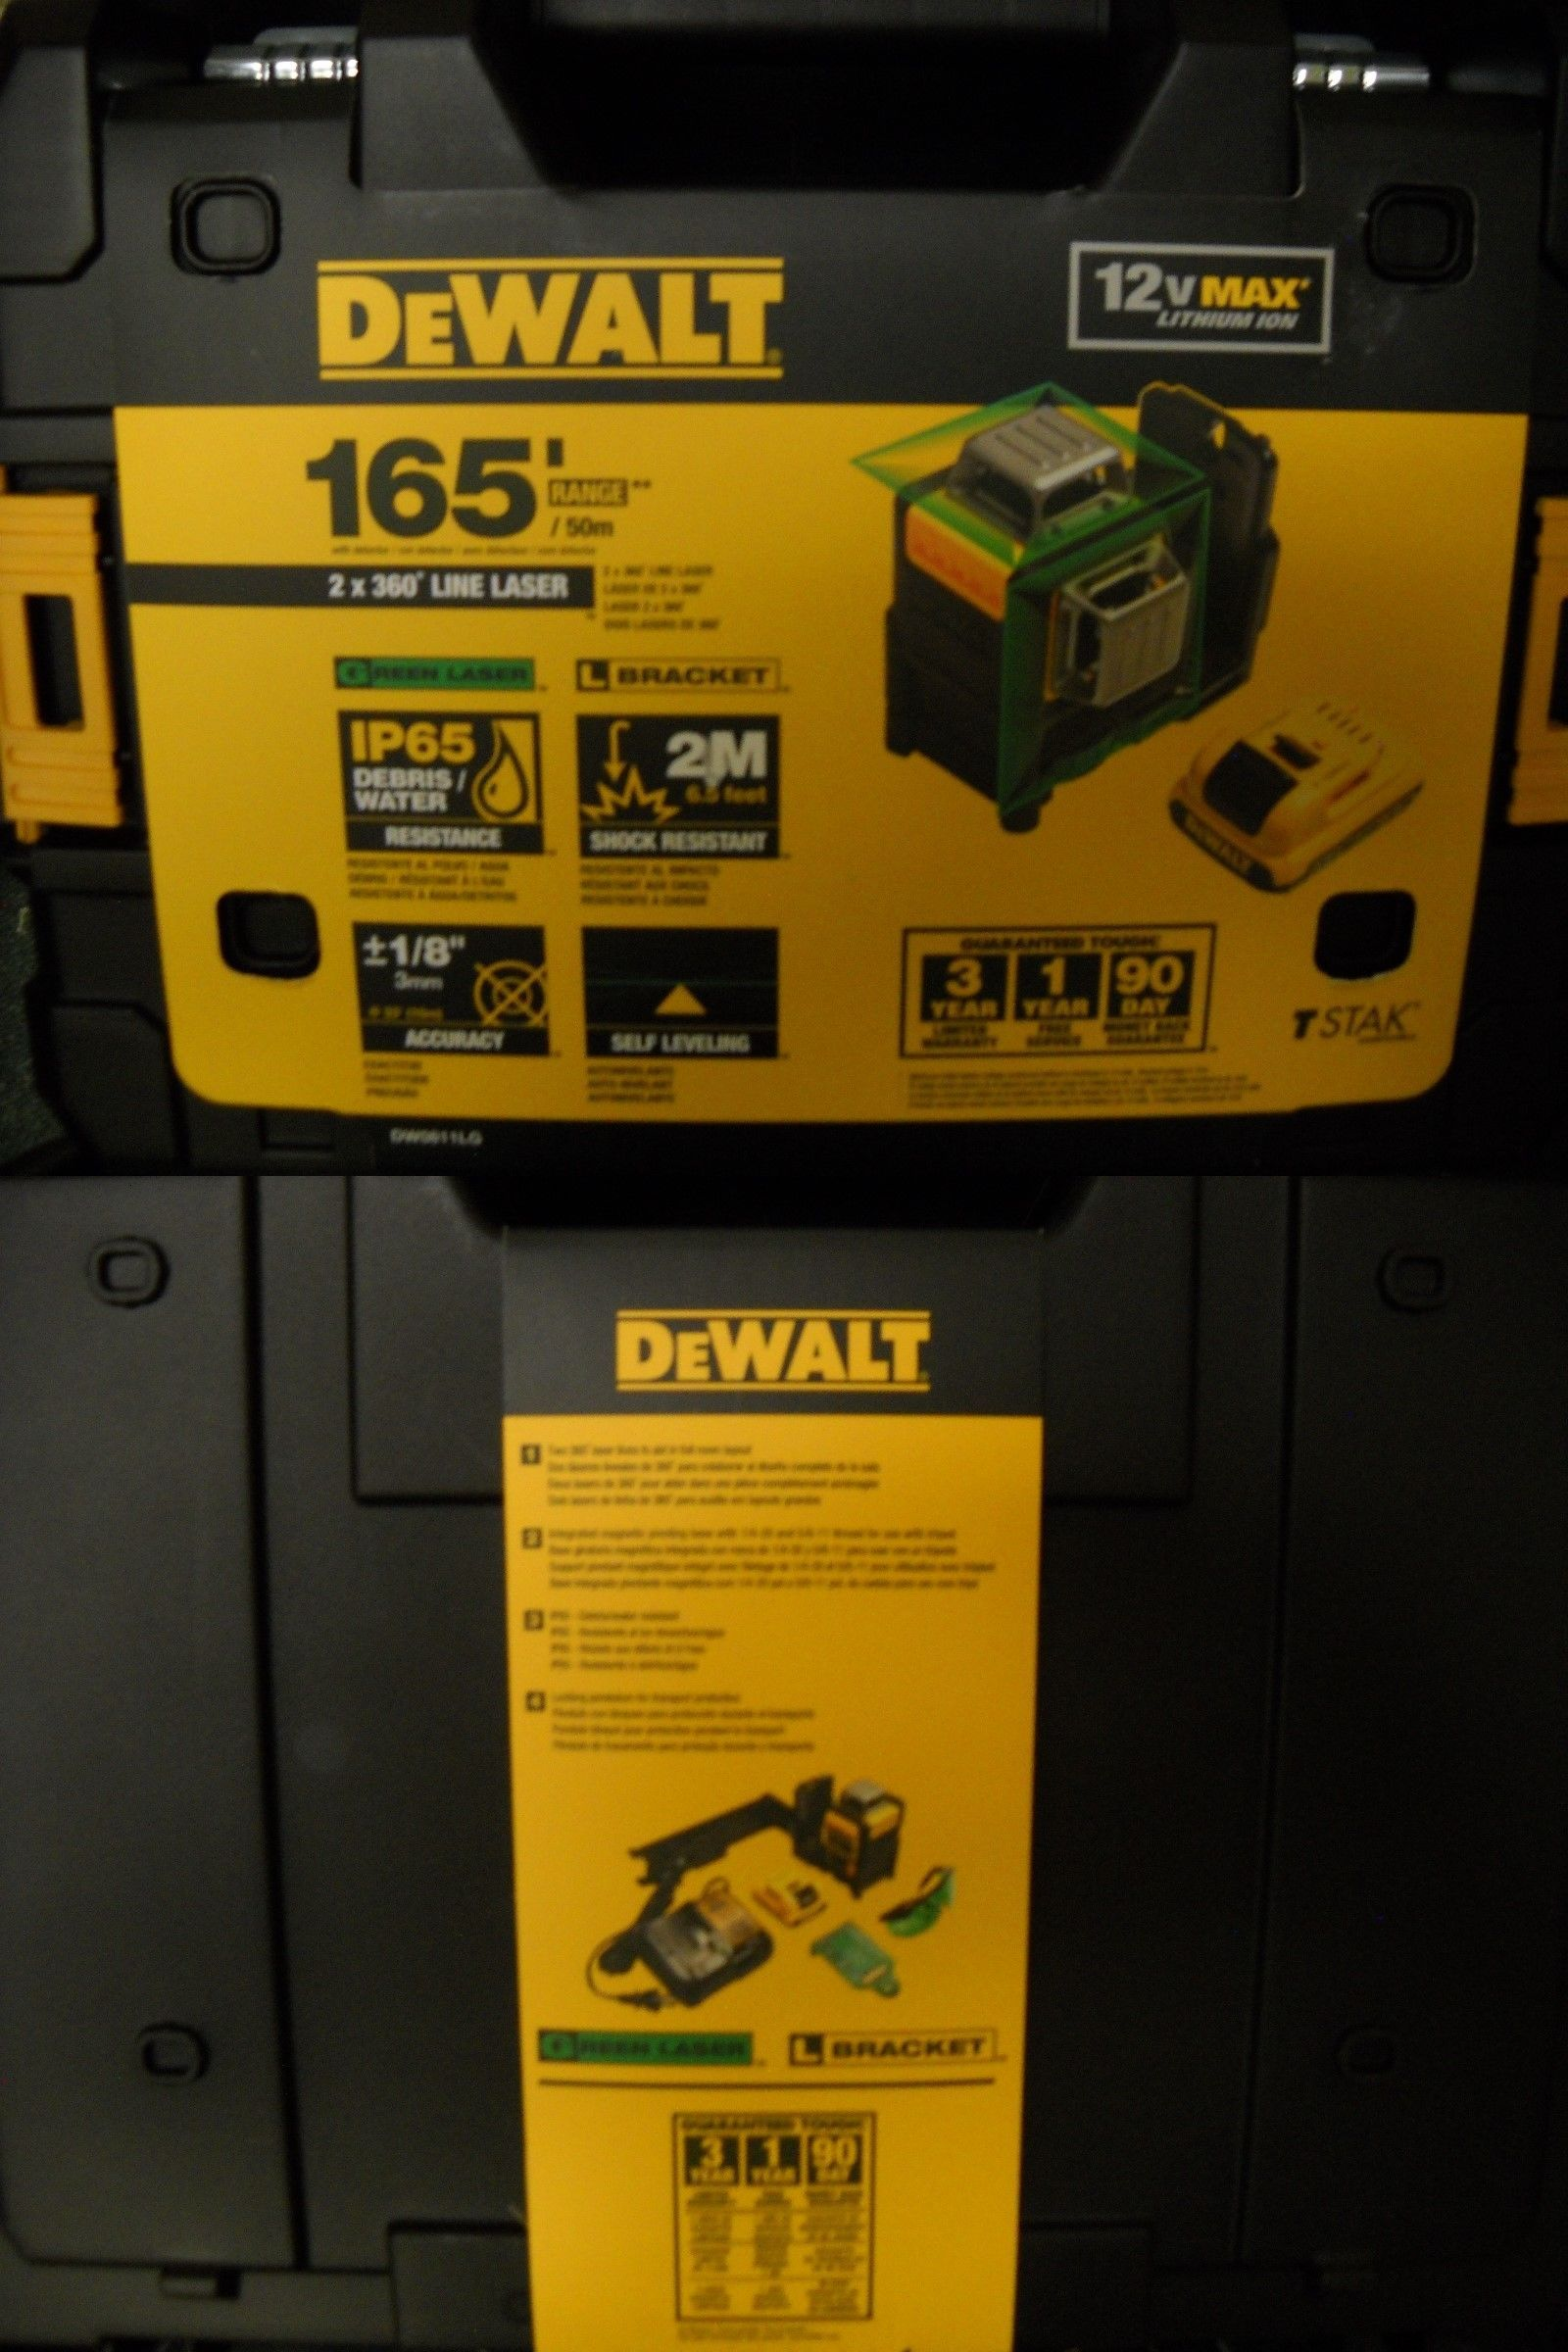 Dewalt Dw0811lg 12v Max 2 X 360 Green Beam Line Laser Kit W Bat And Charger New Dewalt Measuring Tools Beams